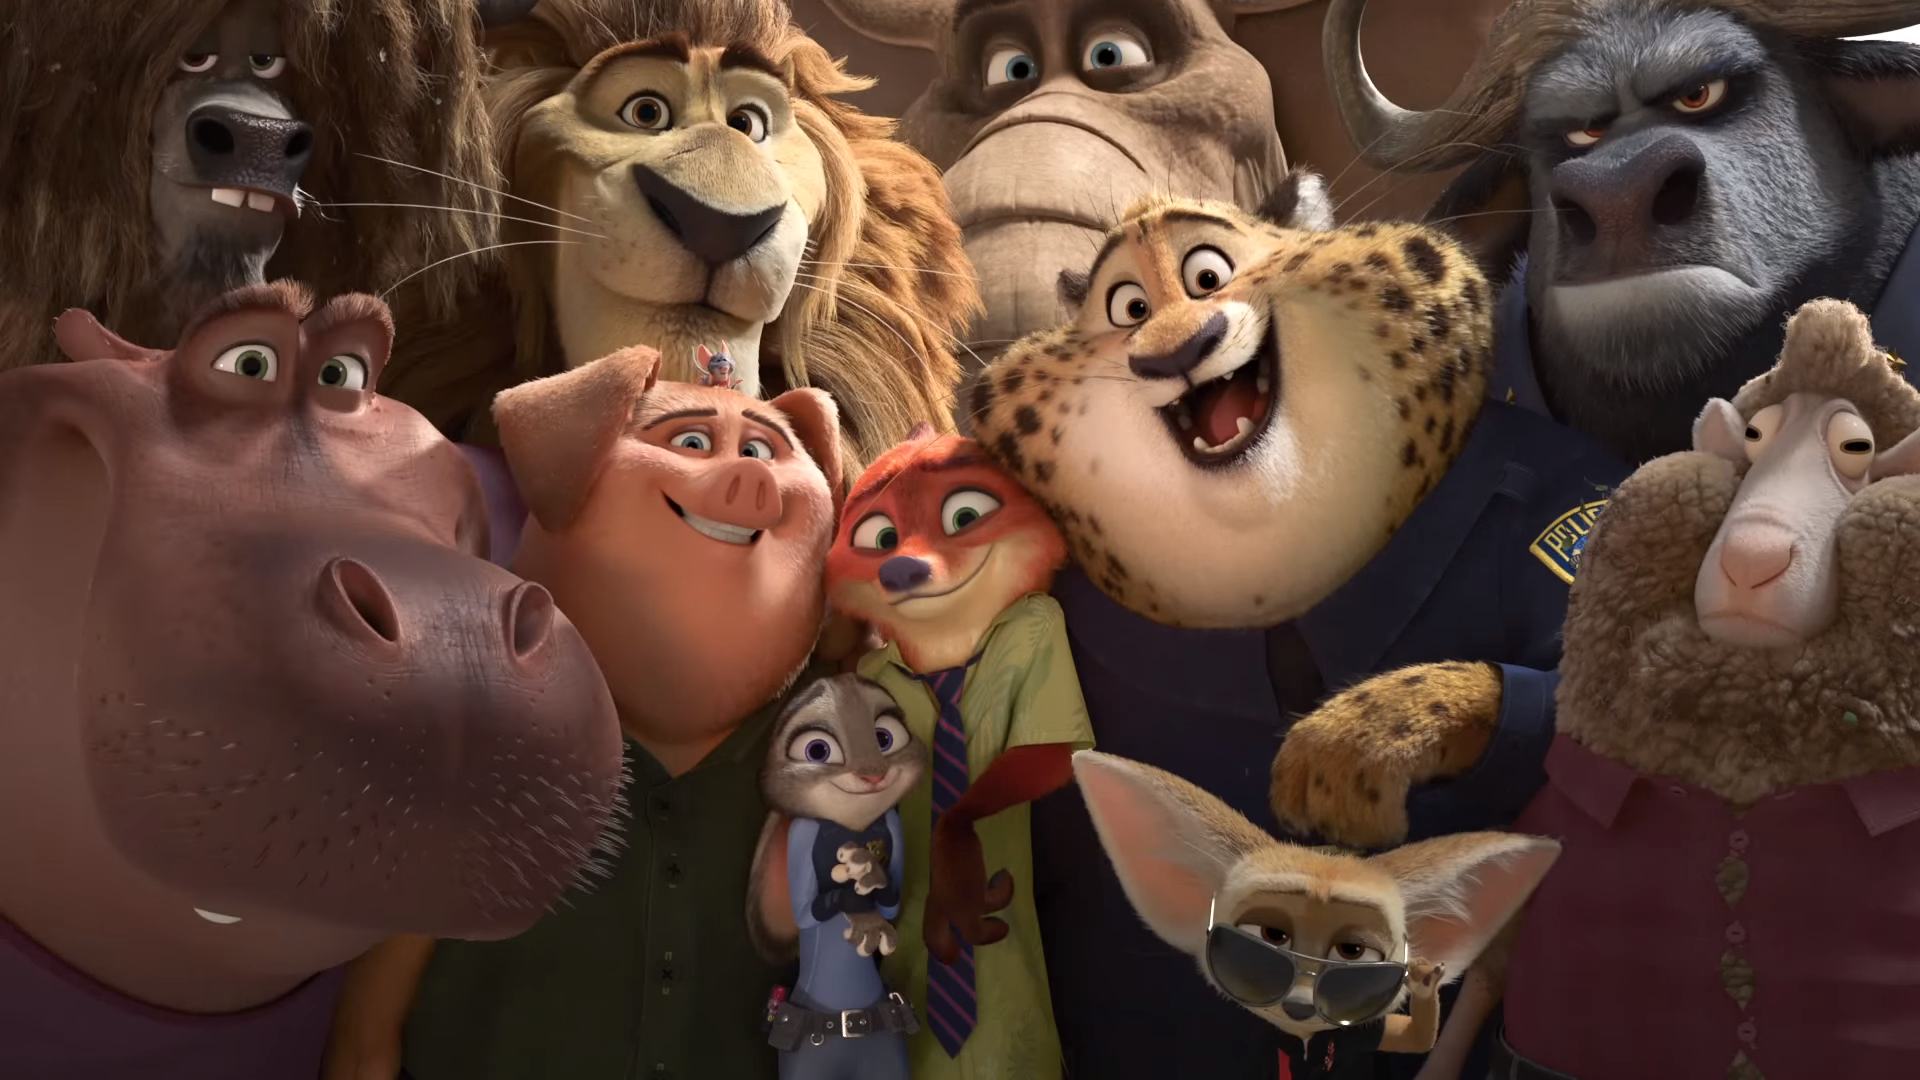 """We may be evolved but deep down we're still animals."" – Zootopia"